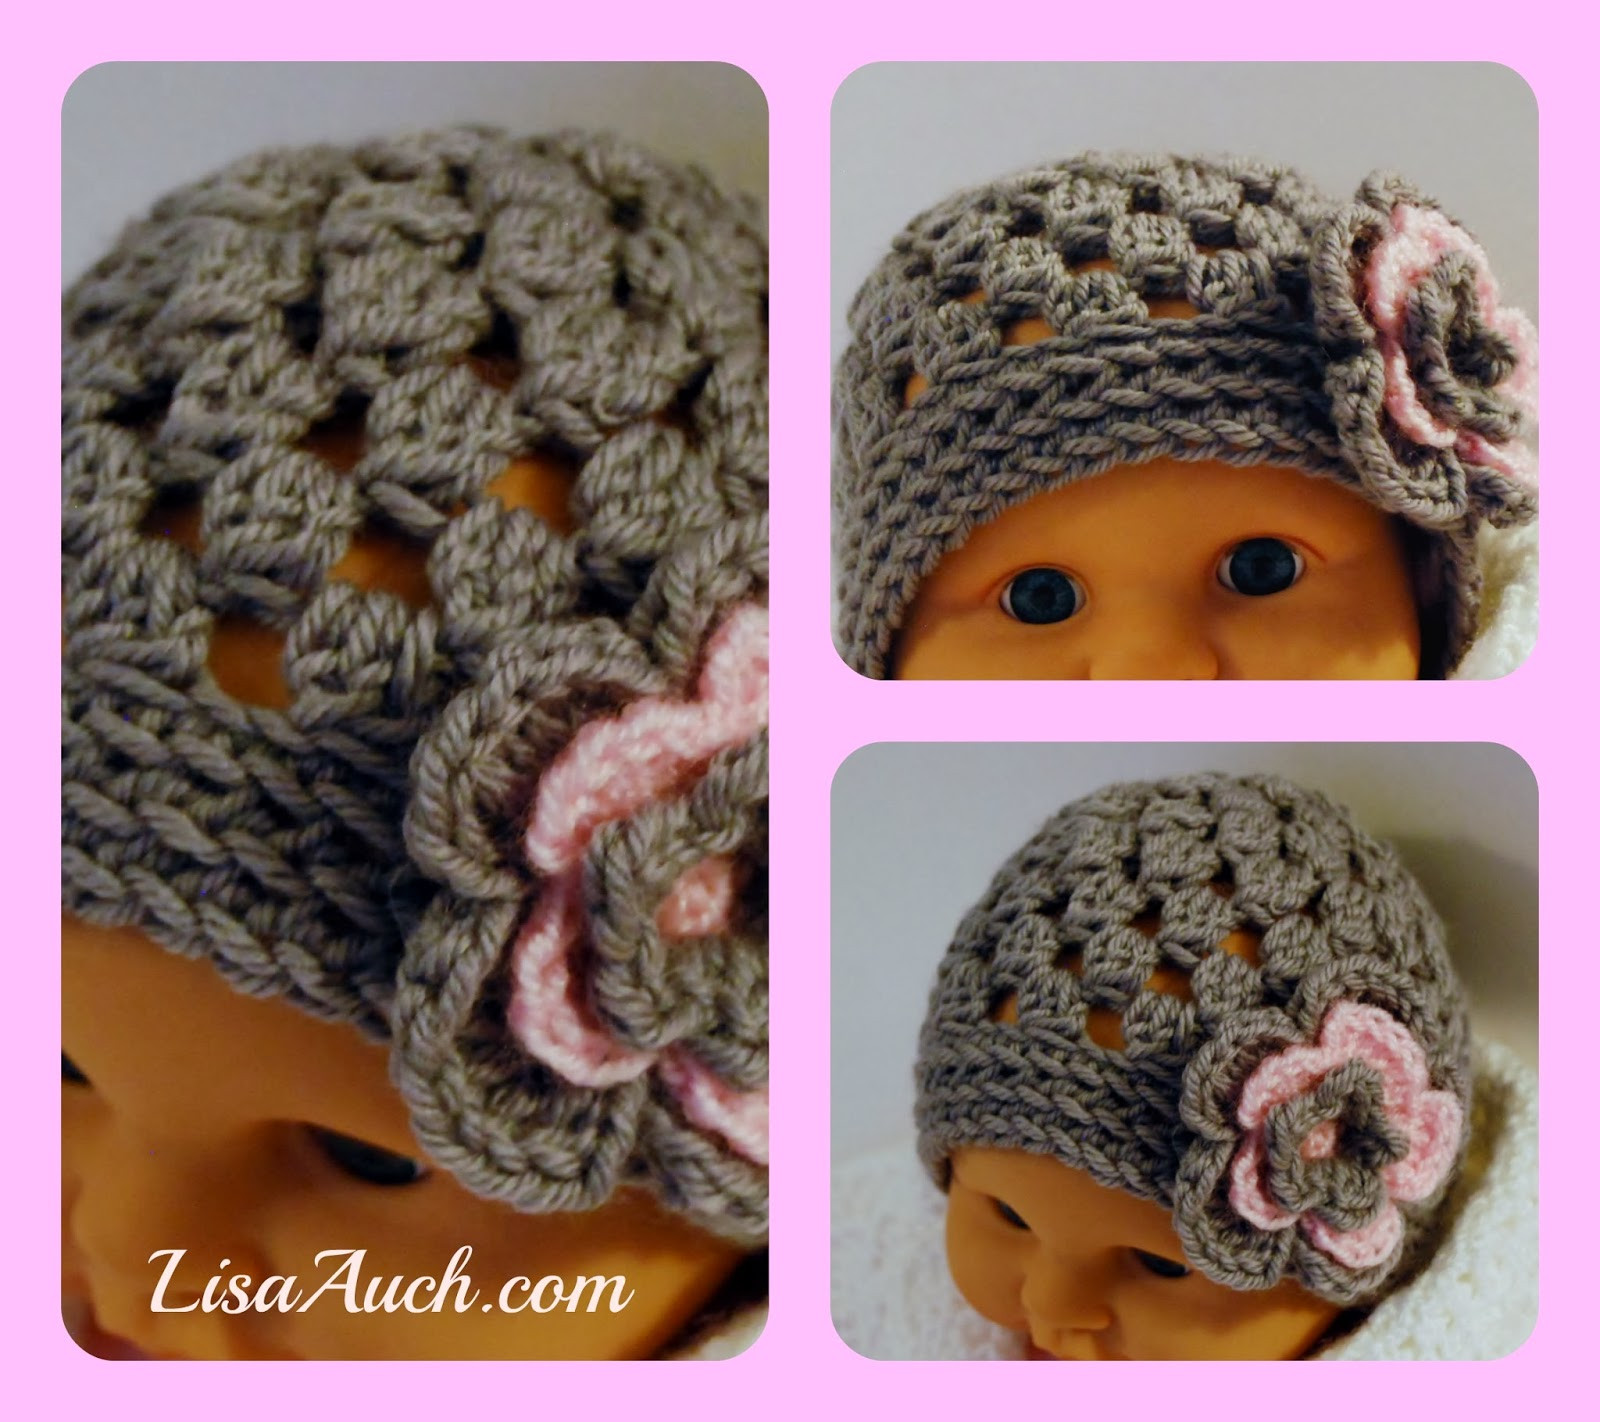 Baby Beanie Crochet Pattern Lovely Free Crochet Patterns and Designs by Lisaauch Free Of Amazing 43 Images Baby Beanie Crochet Pattern